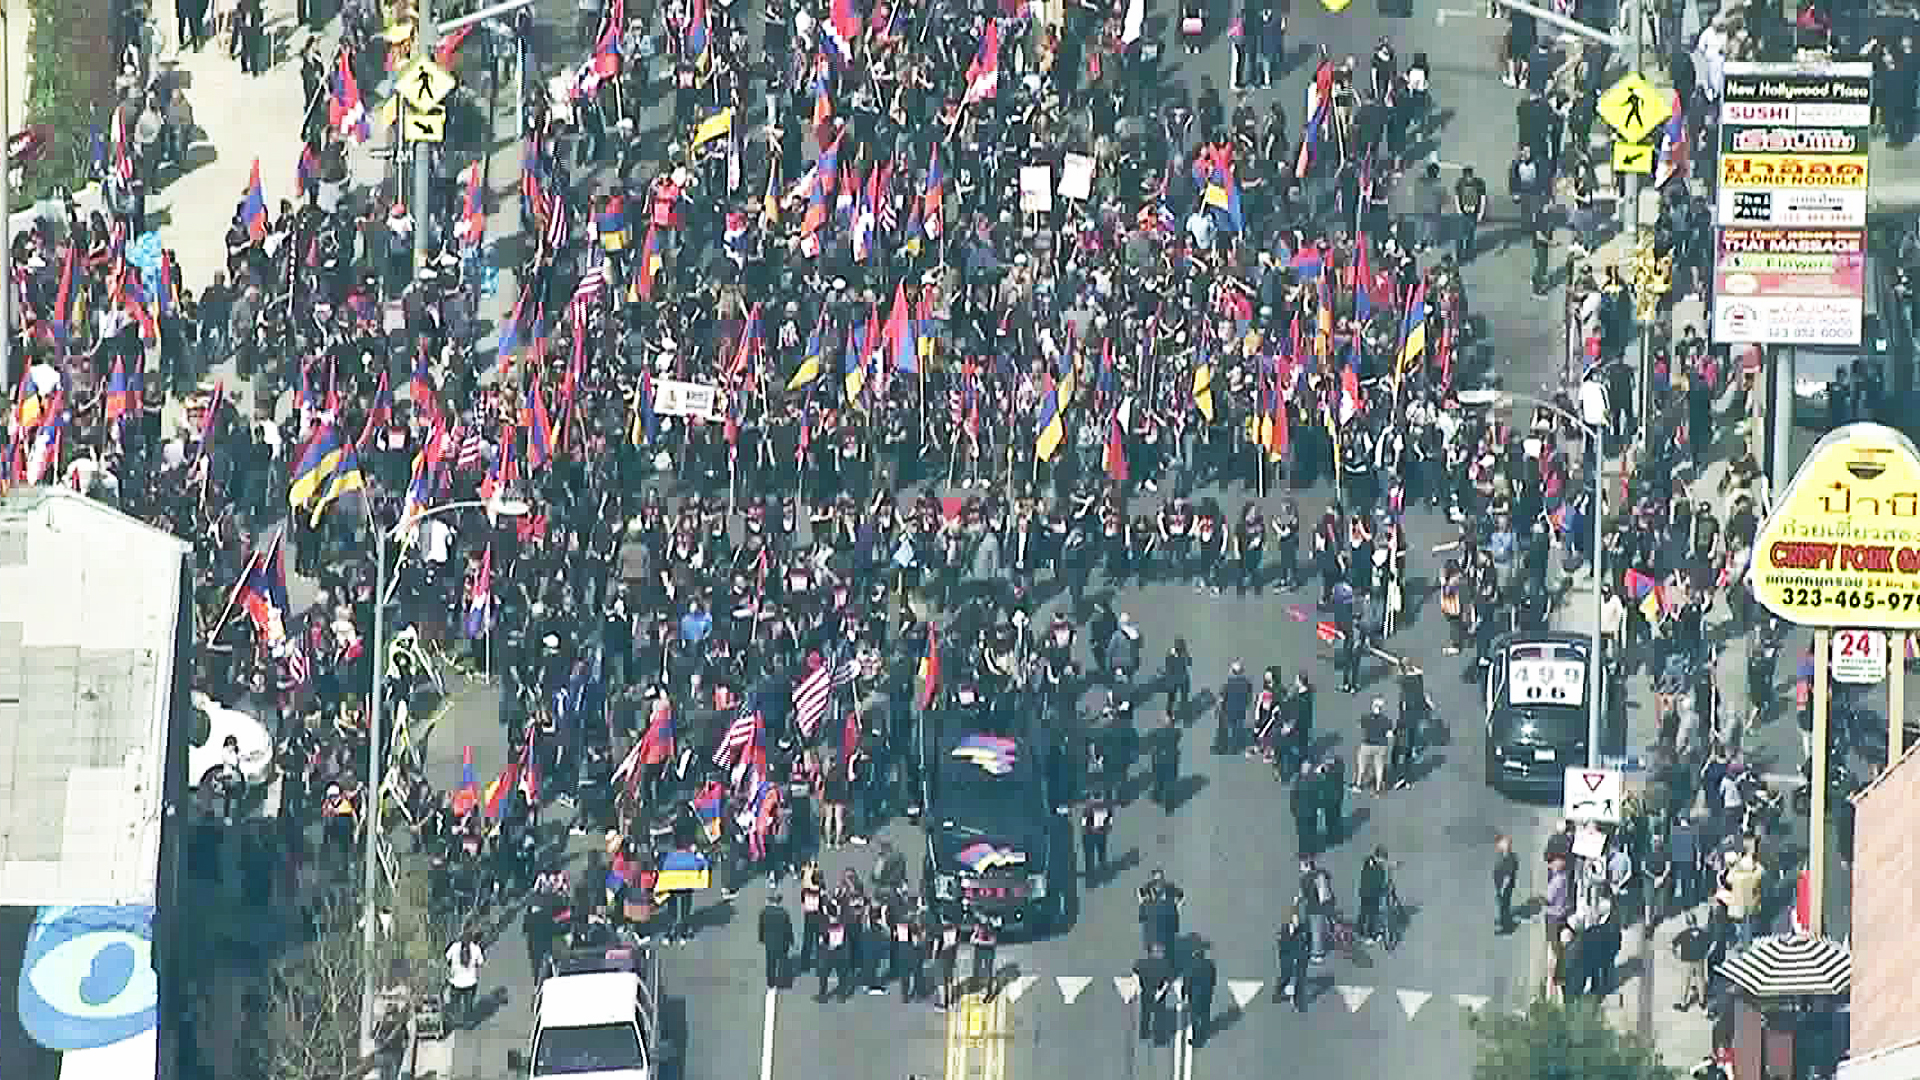 A march on the anniversary of the Armenian genocide brought thousands of people to Hollywood on April 24, 2018. (Credit: KTLA)